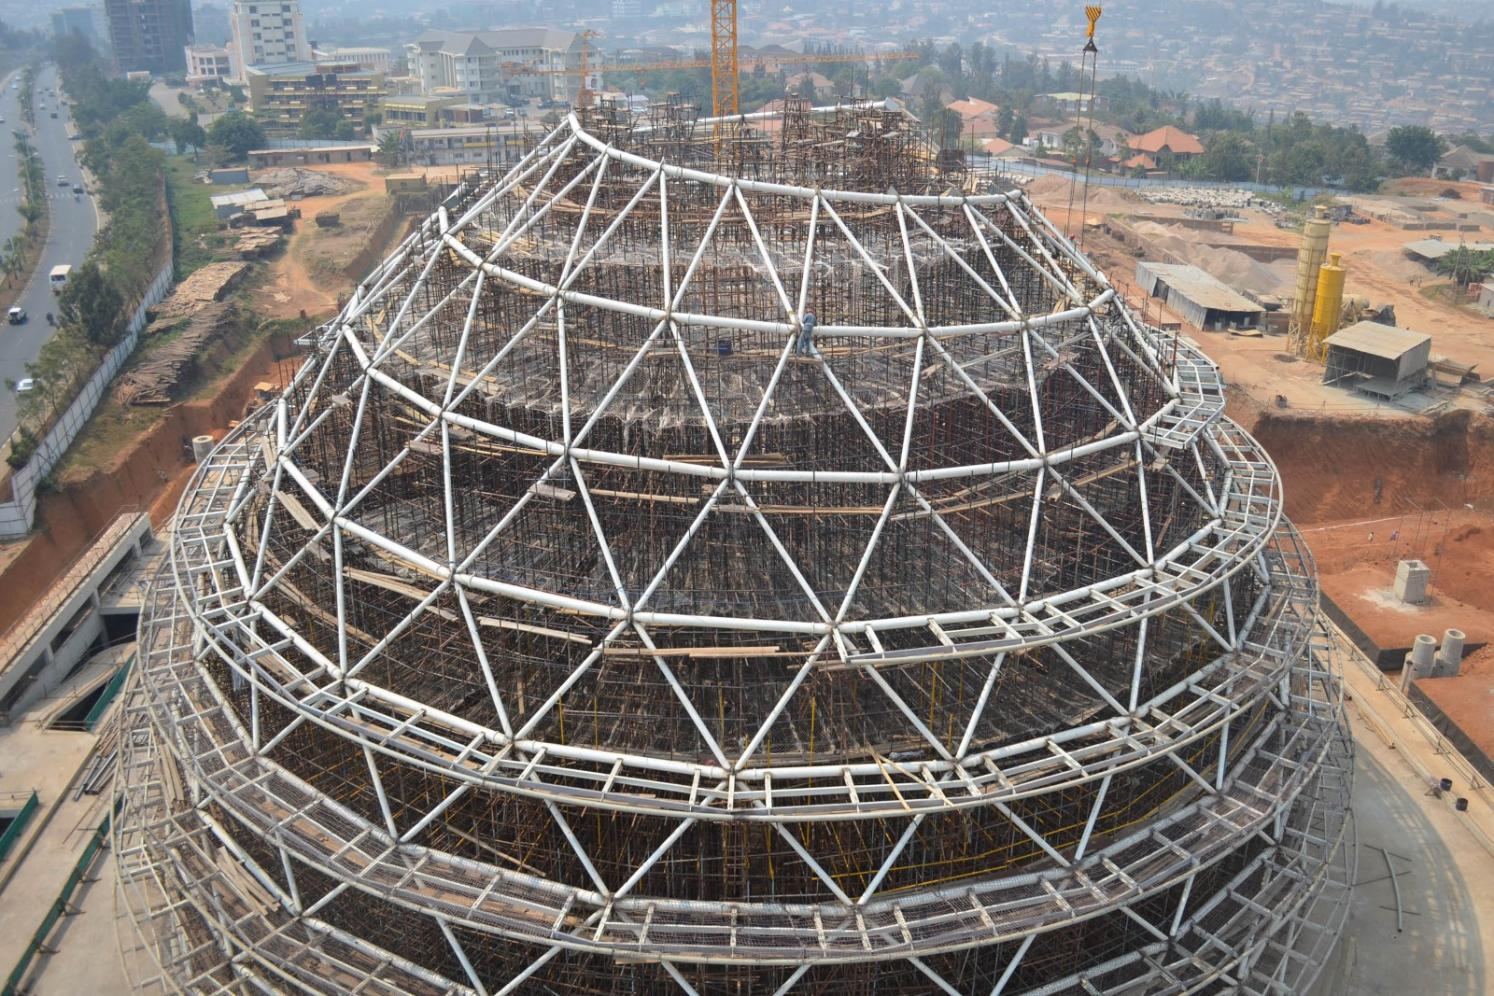 kigali convention center under construction 0